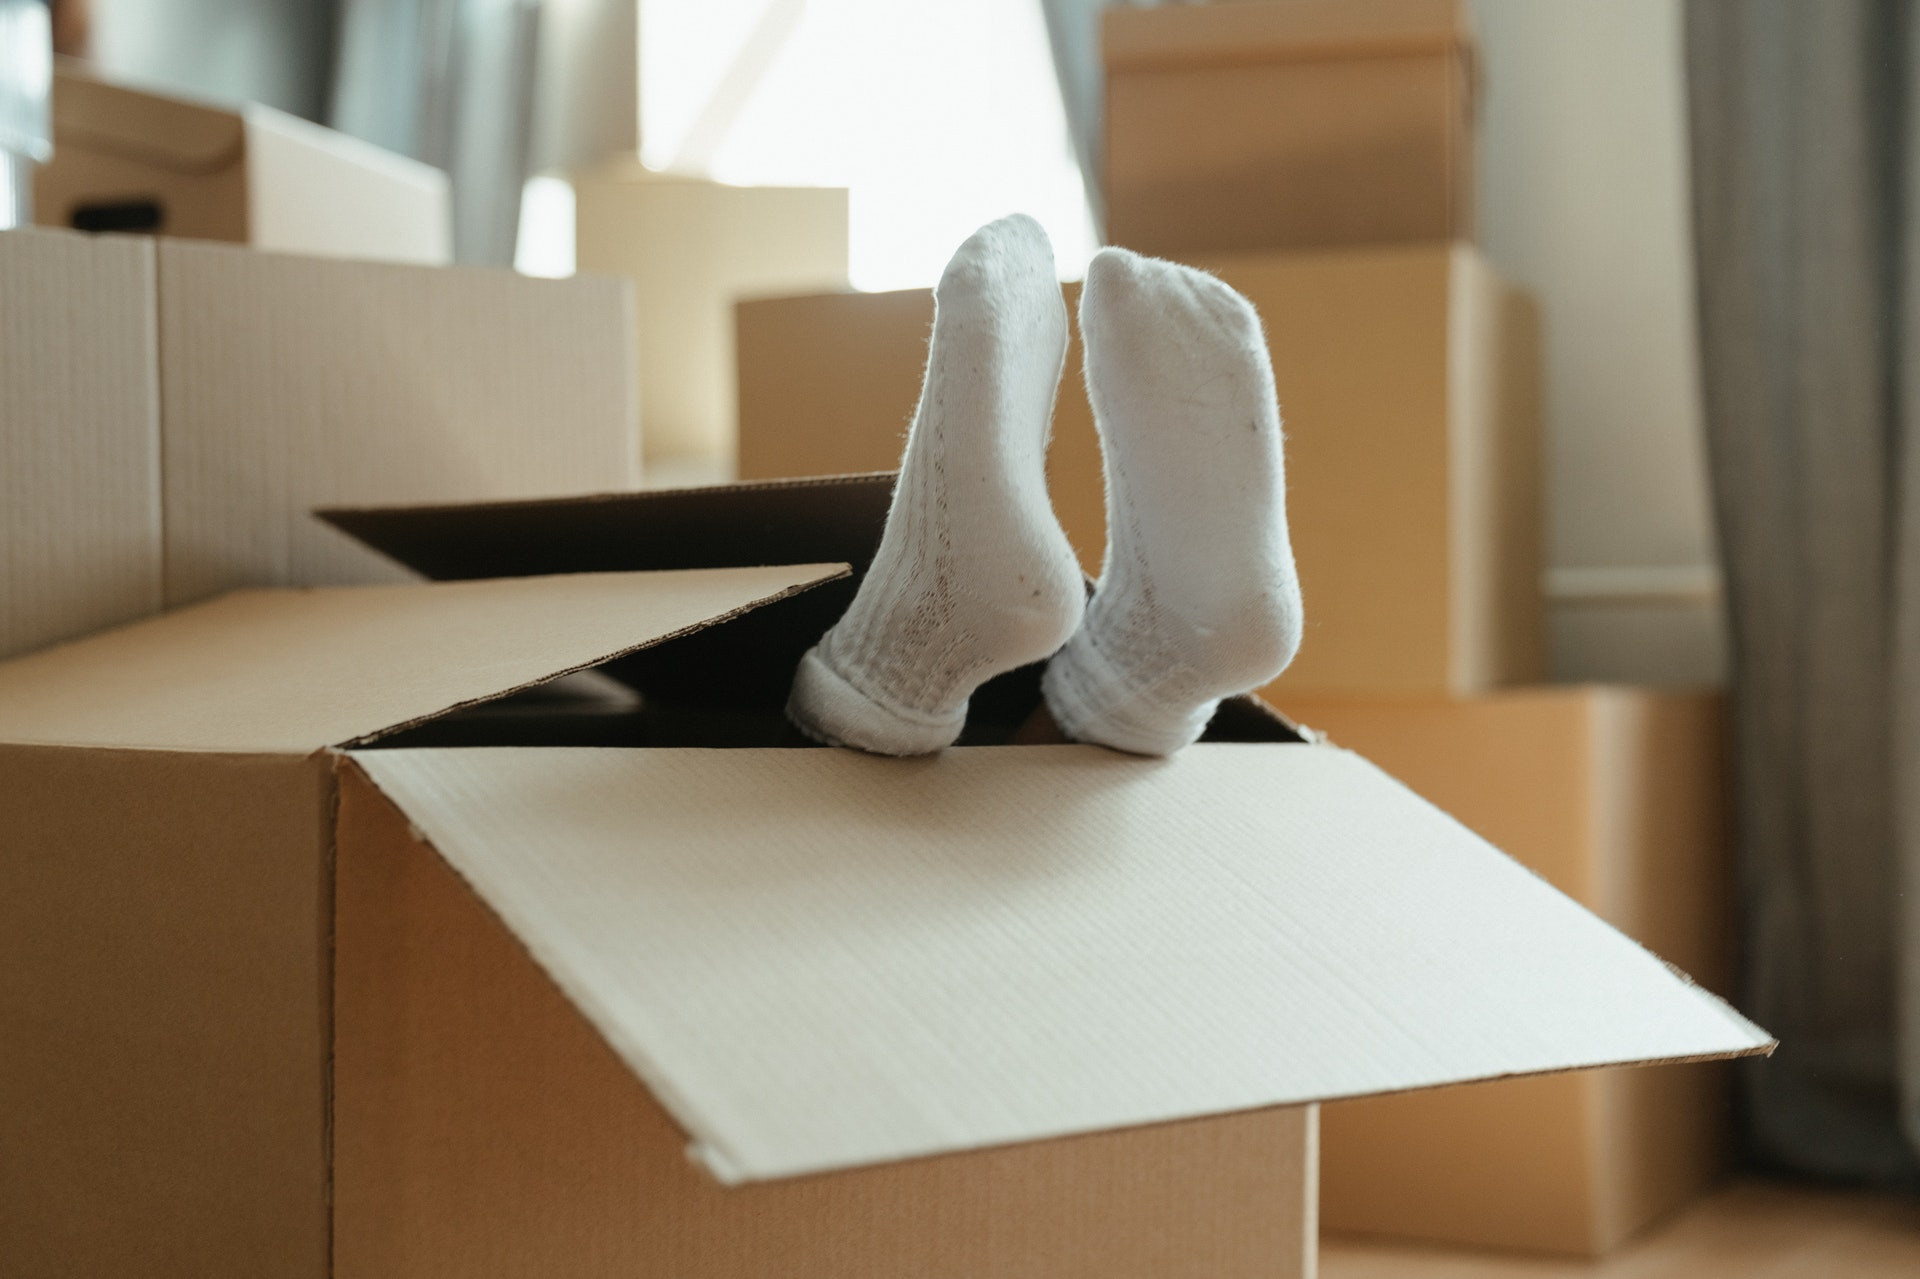 How to Remove Stubborn Sock Stains